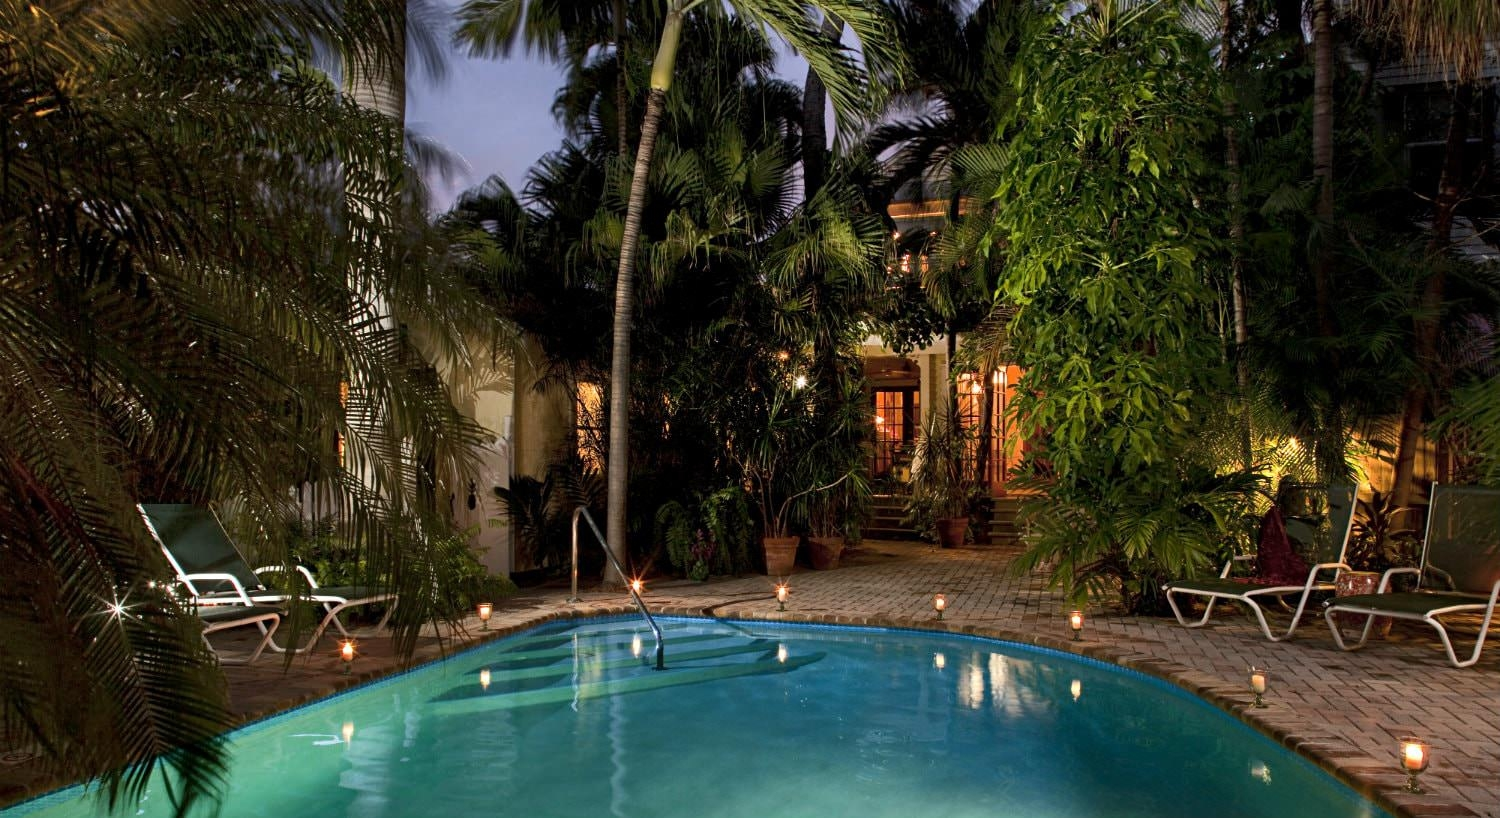 Organic shaped swimming pool with brick pavers at dusk surrounded by romantic lighting and lush tropical greenery